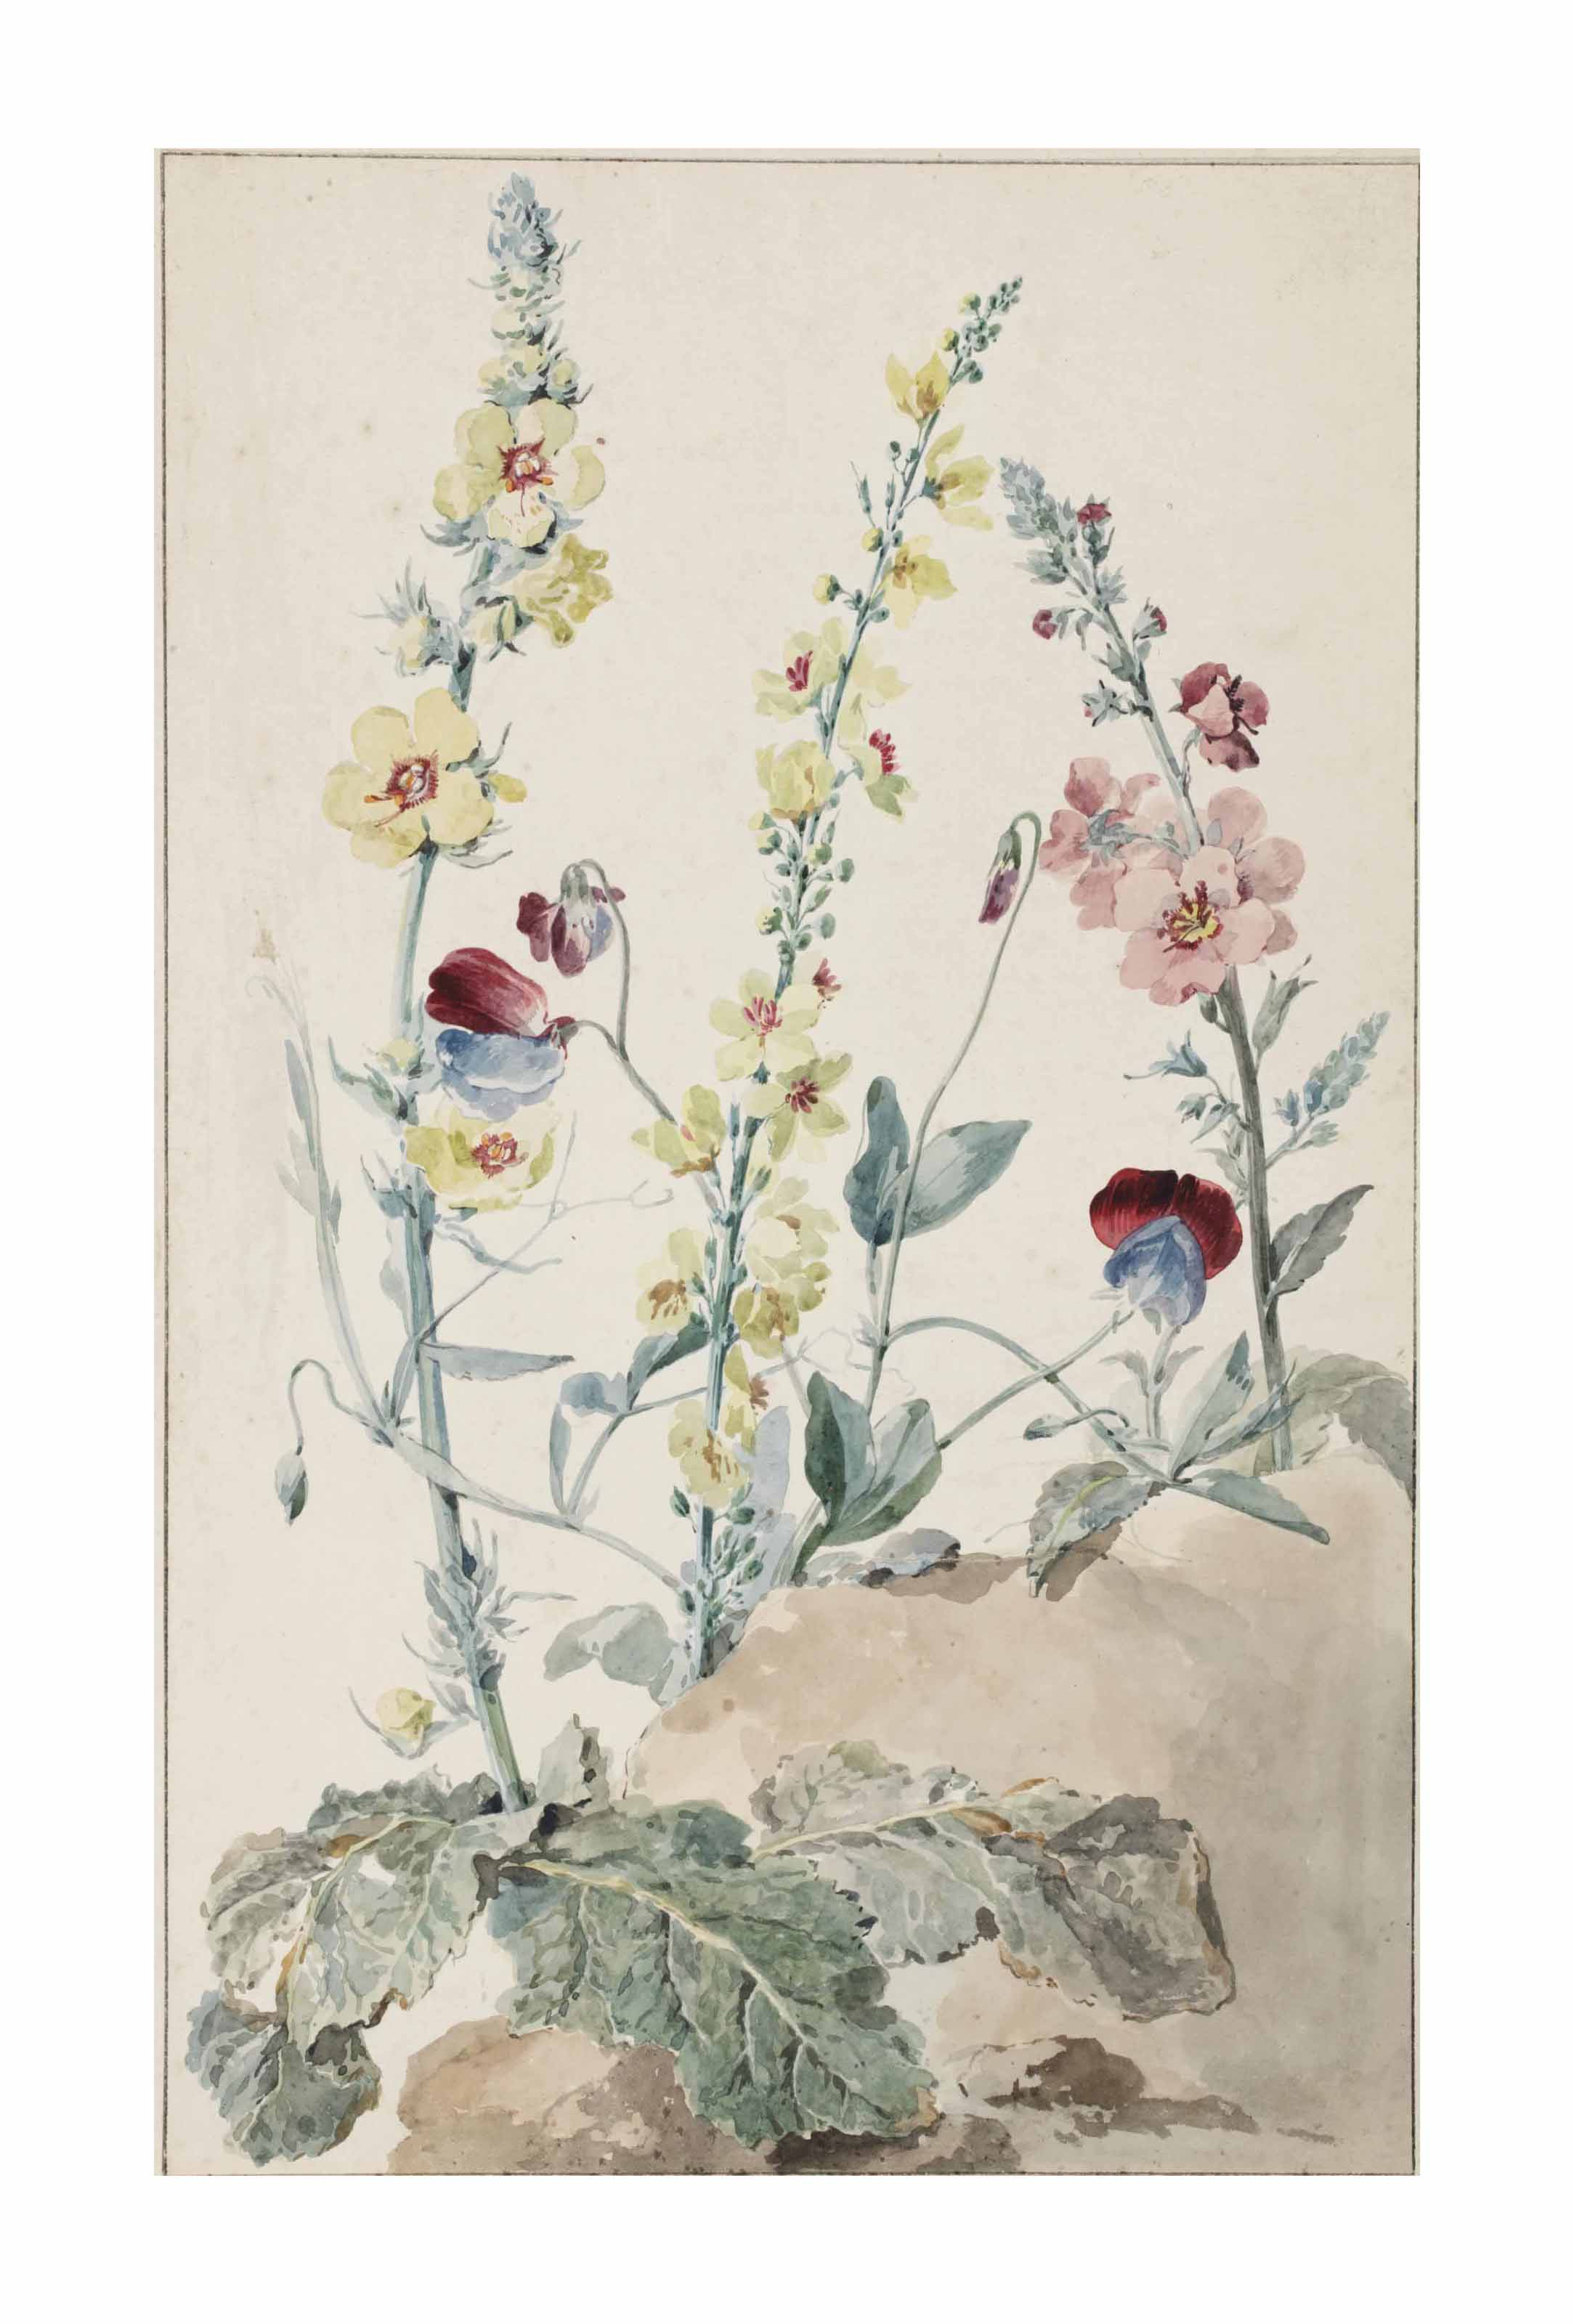 Study of Verbascum and sweet-peas (Lathyrus odoratus)